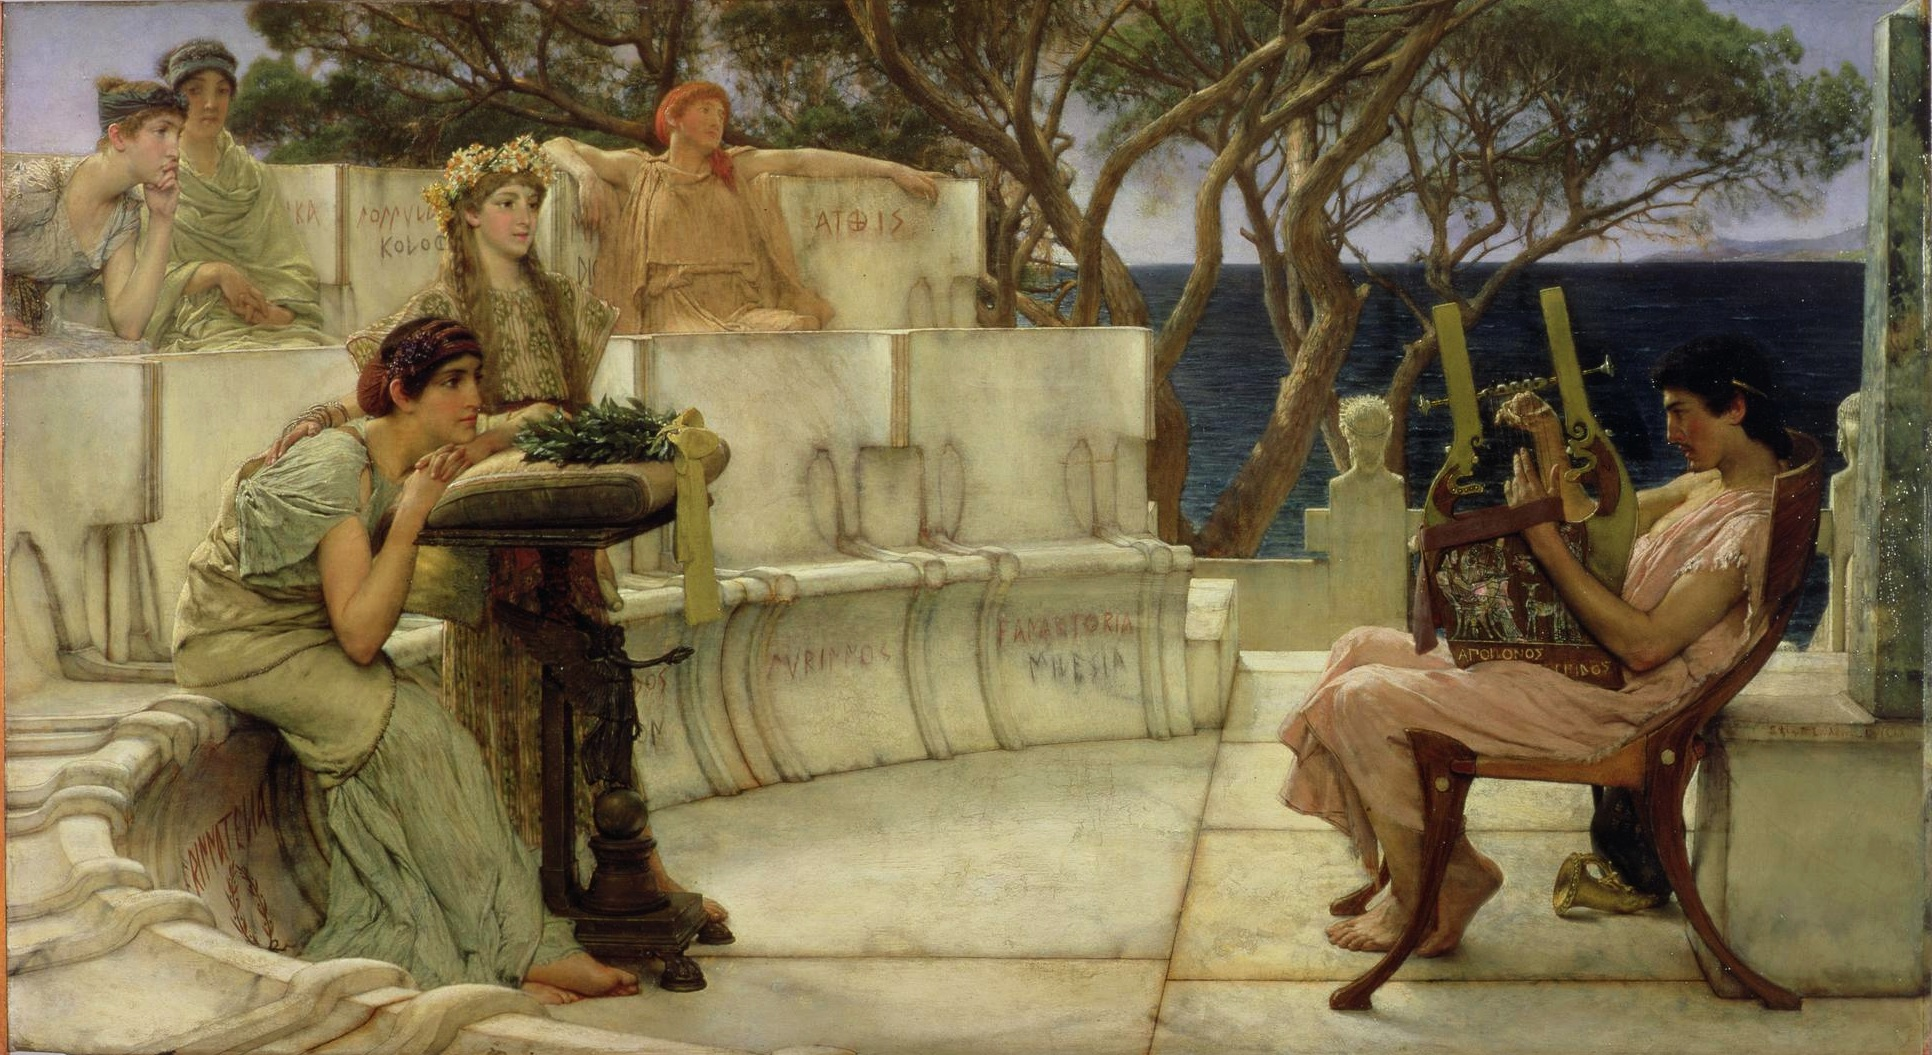 Lawrence Alma-Tadema, Sappho and Alcaeus